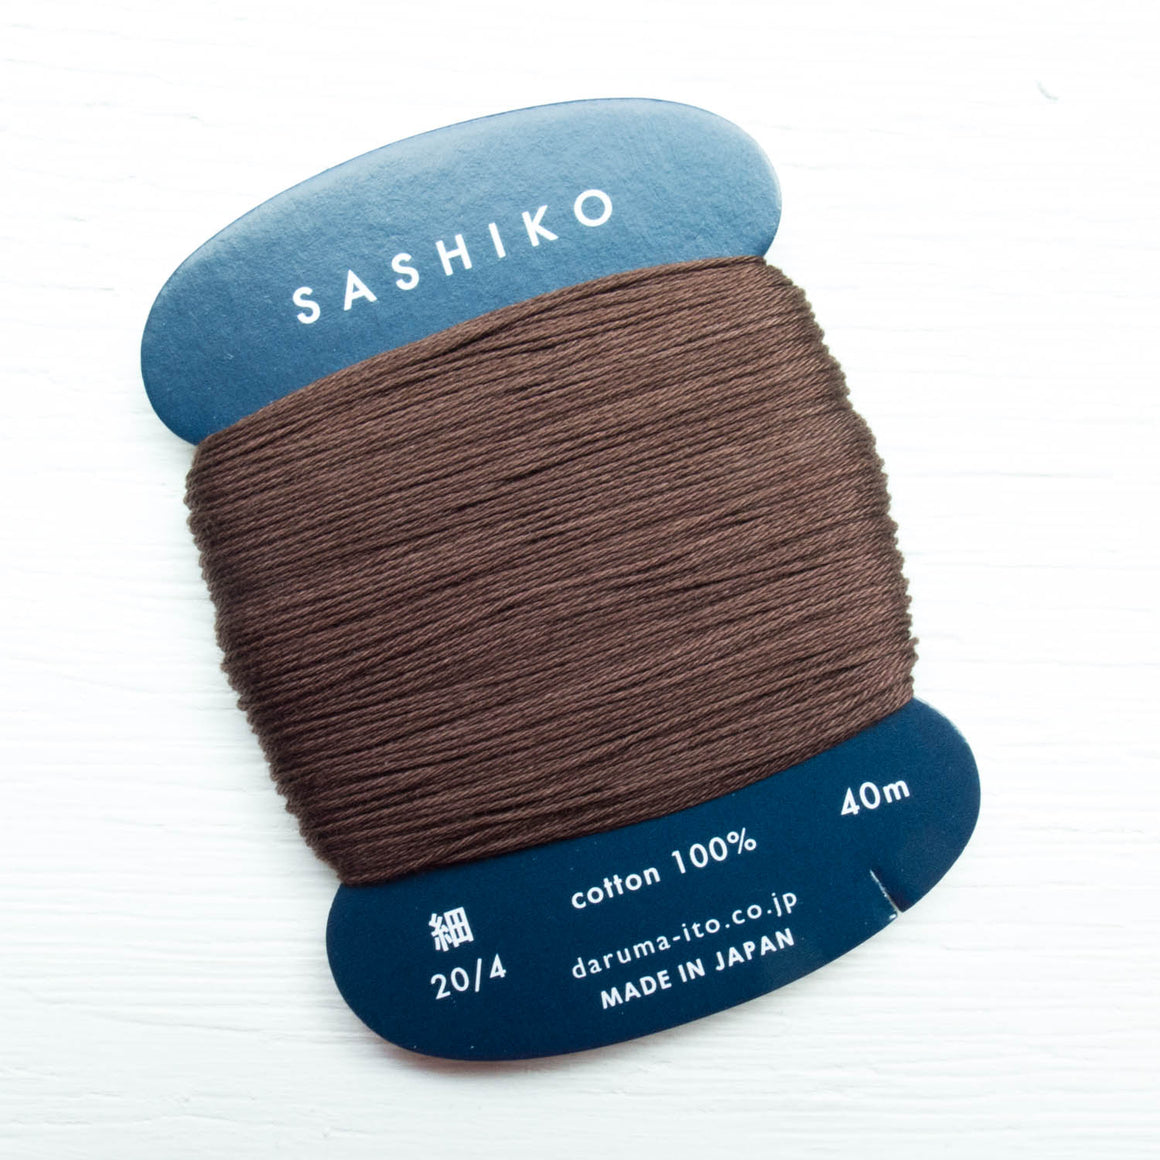 Daruma Carded Sashiko Thread - Brown (no. 218) Sashiko - Snuggly Monkey